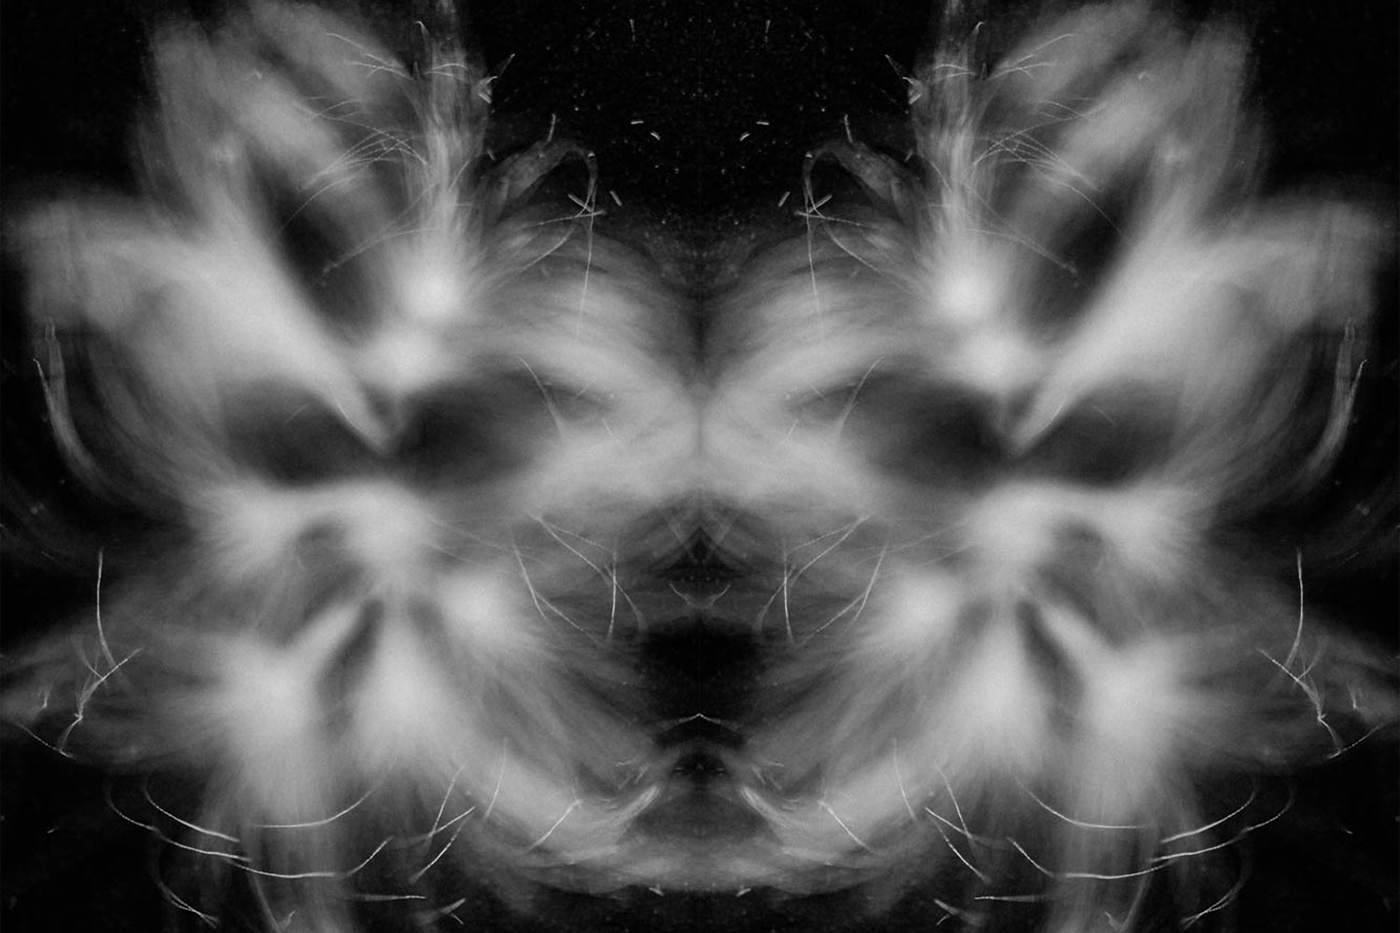 Black and white dandelion seed photograph.